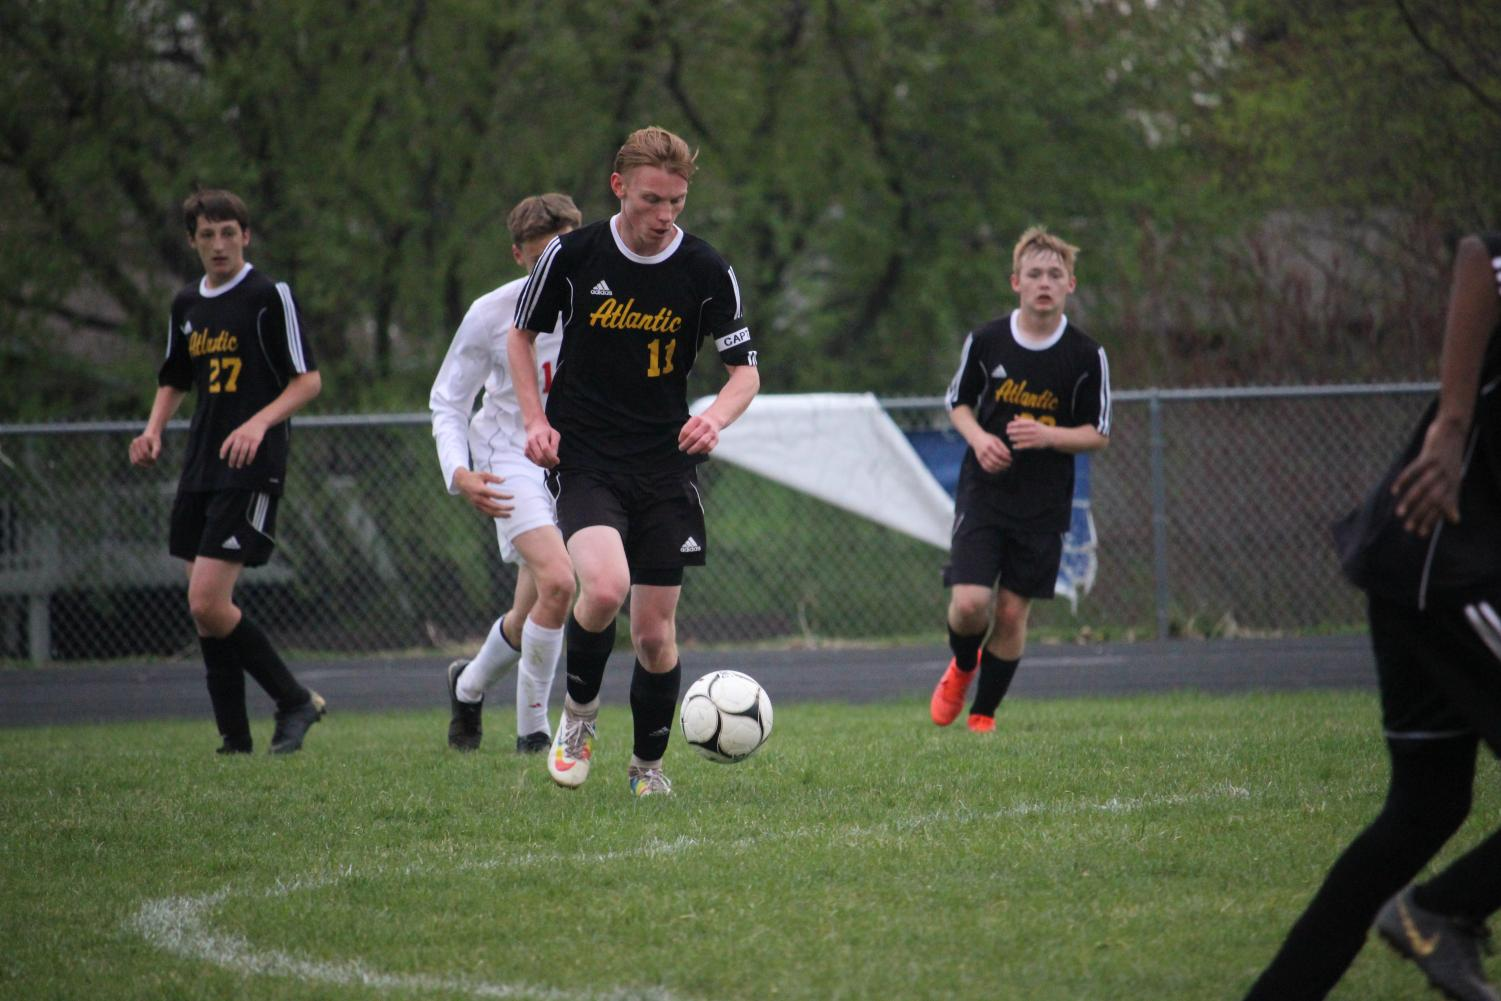 OFFENSIVE MINDSET - Junior Ben Andersen dribbles the ball upfield in the matchup against the Harlan Cyclones. Andersen had a total of four shots in the three games during the week of April 22.